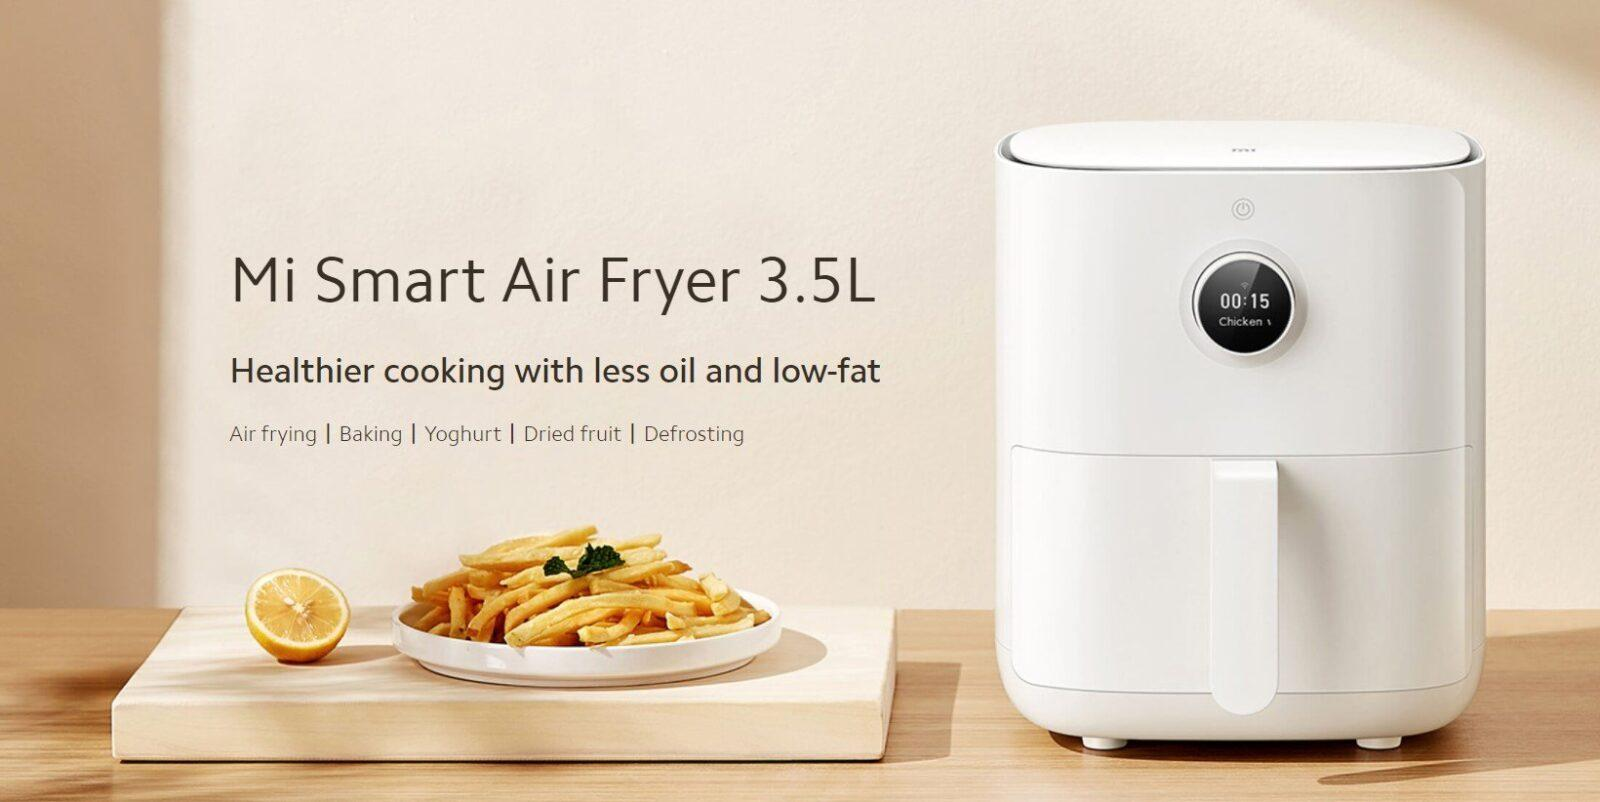 Xiaomi has released several new products to the global market (mi smart air fryer 3.5l)